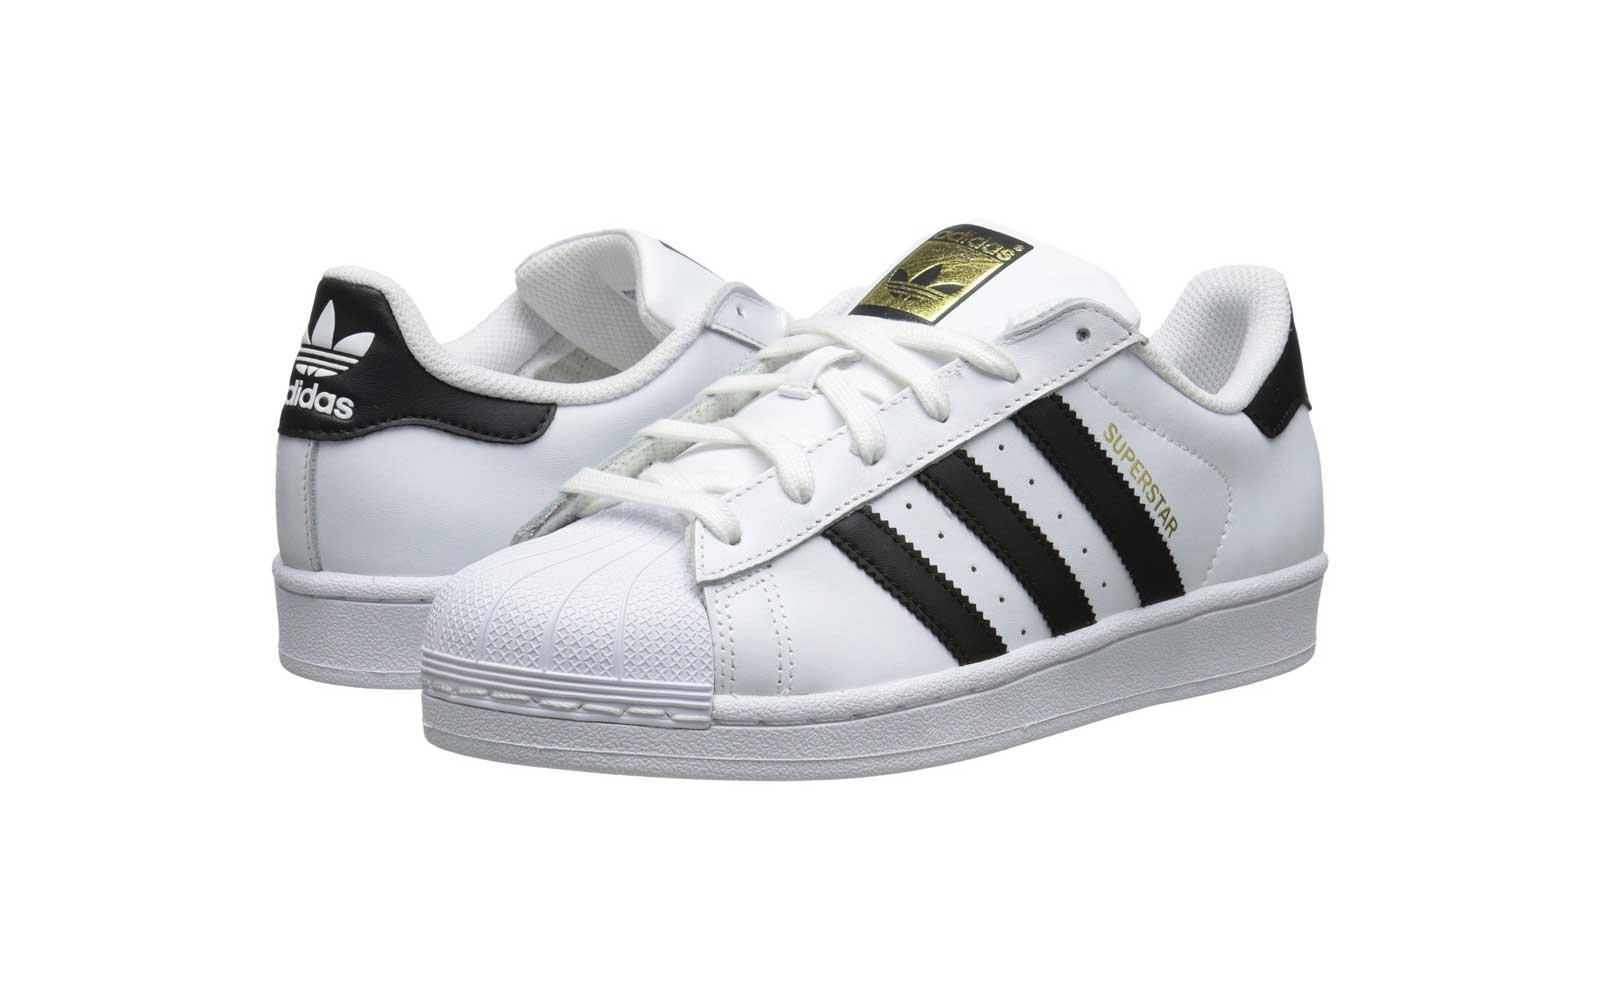 Adidas Original Superstar Shoes Women